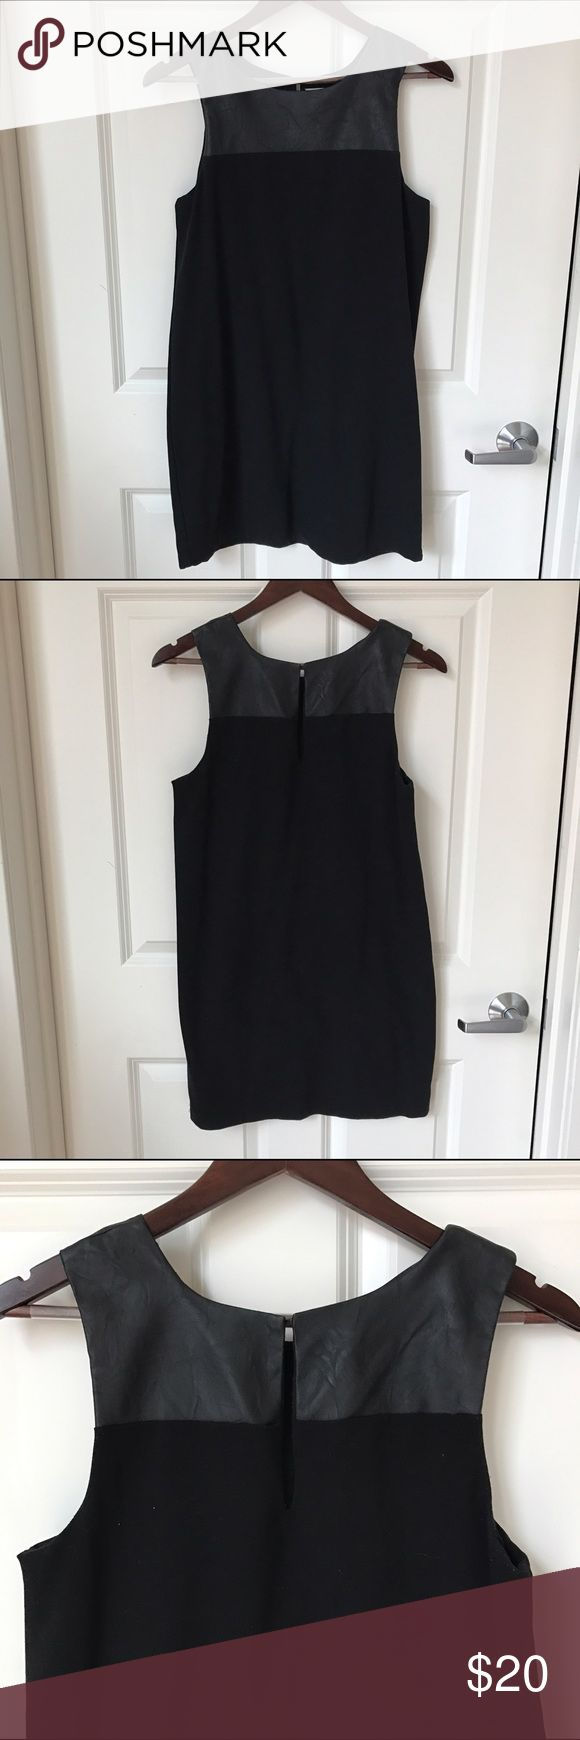 {Boutique} Black Shift Dress with Faux Leather Lined black Shift Dress with faux leather paneling on top shoulders and chest. Wear it with a blazer, scarf or over a turtleneck with tights. Great condition and great for work. Dresses